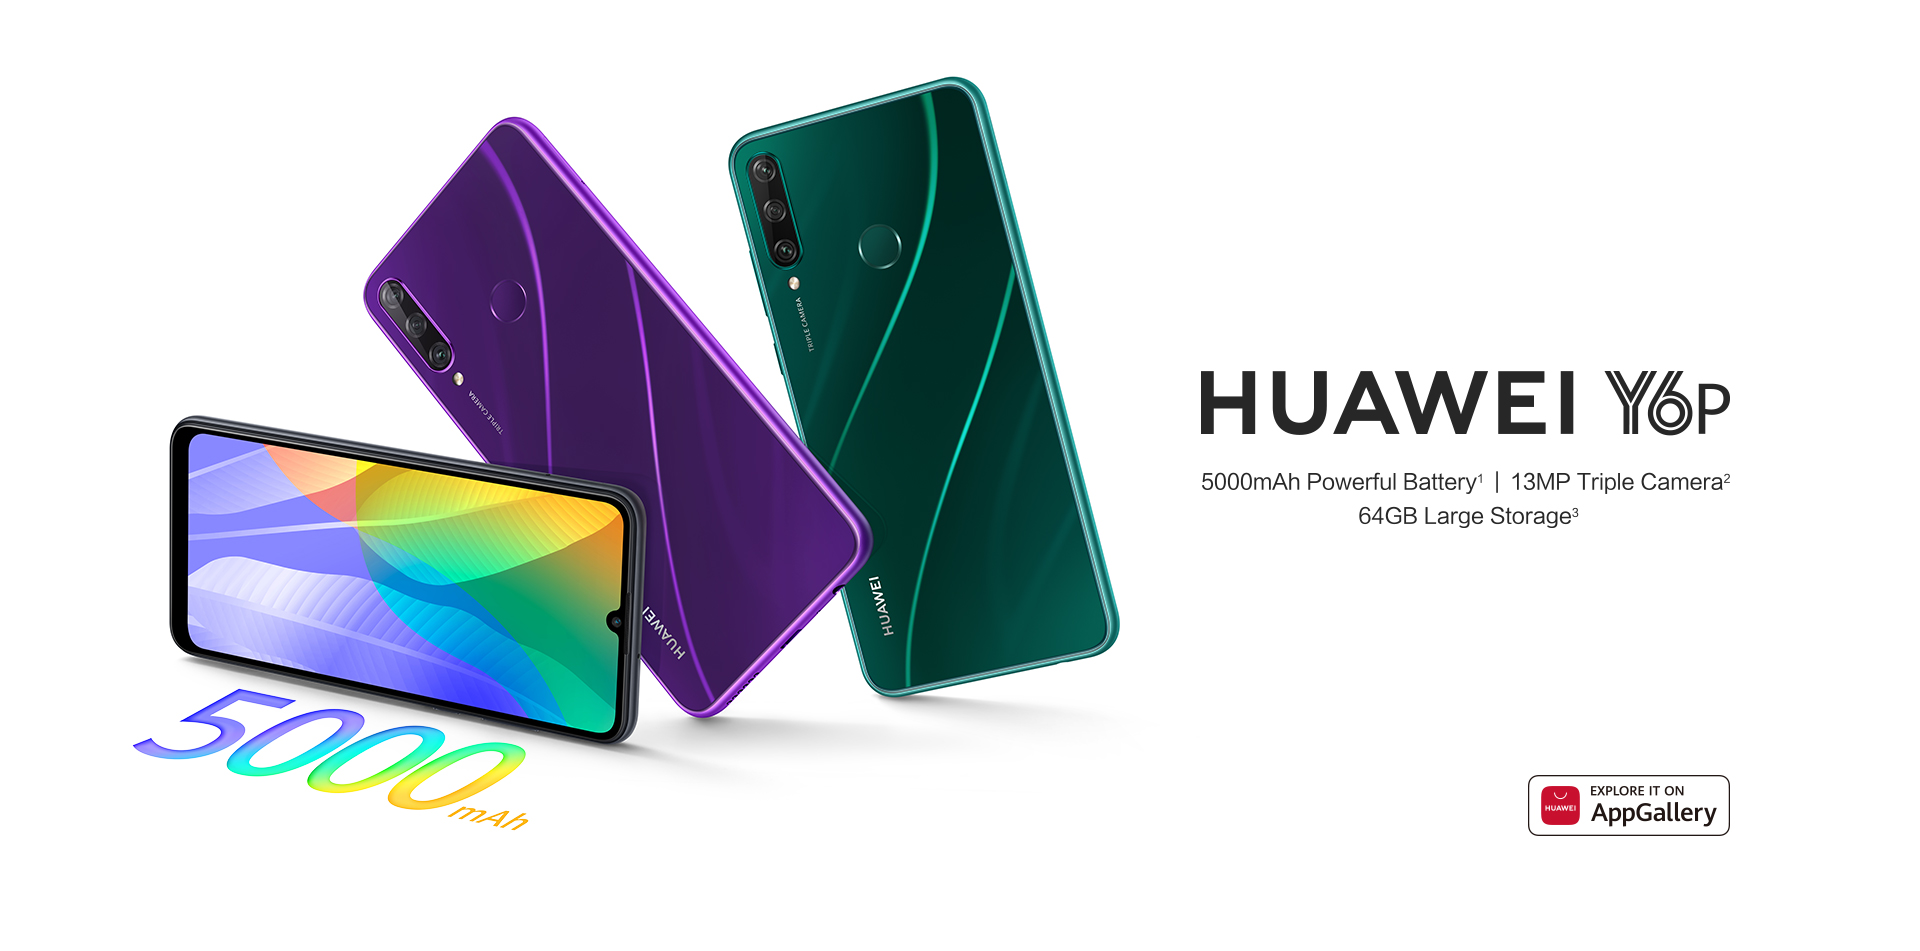 The new Huawei Y6p,